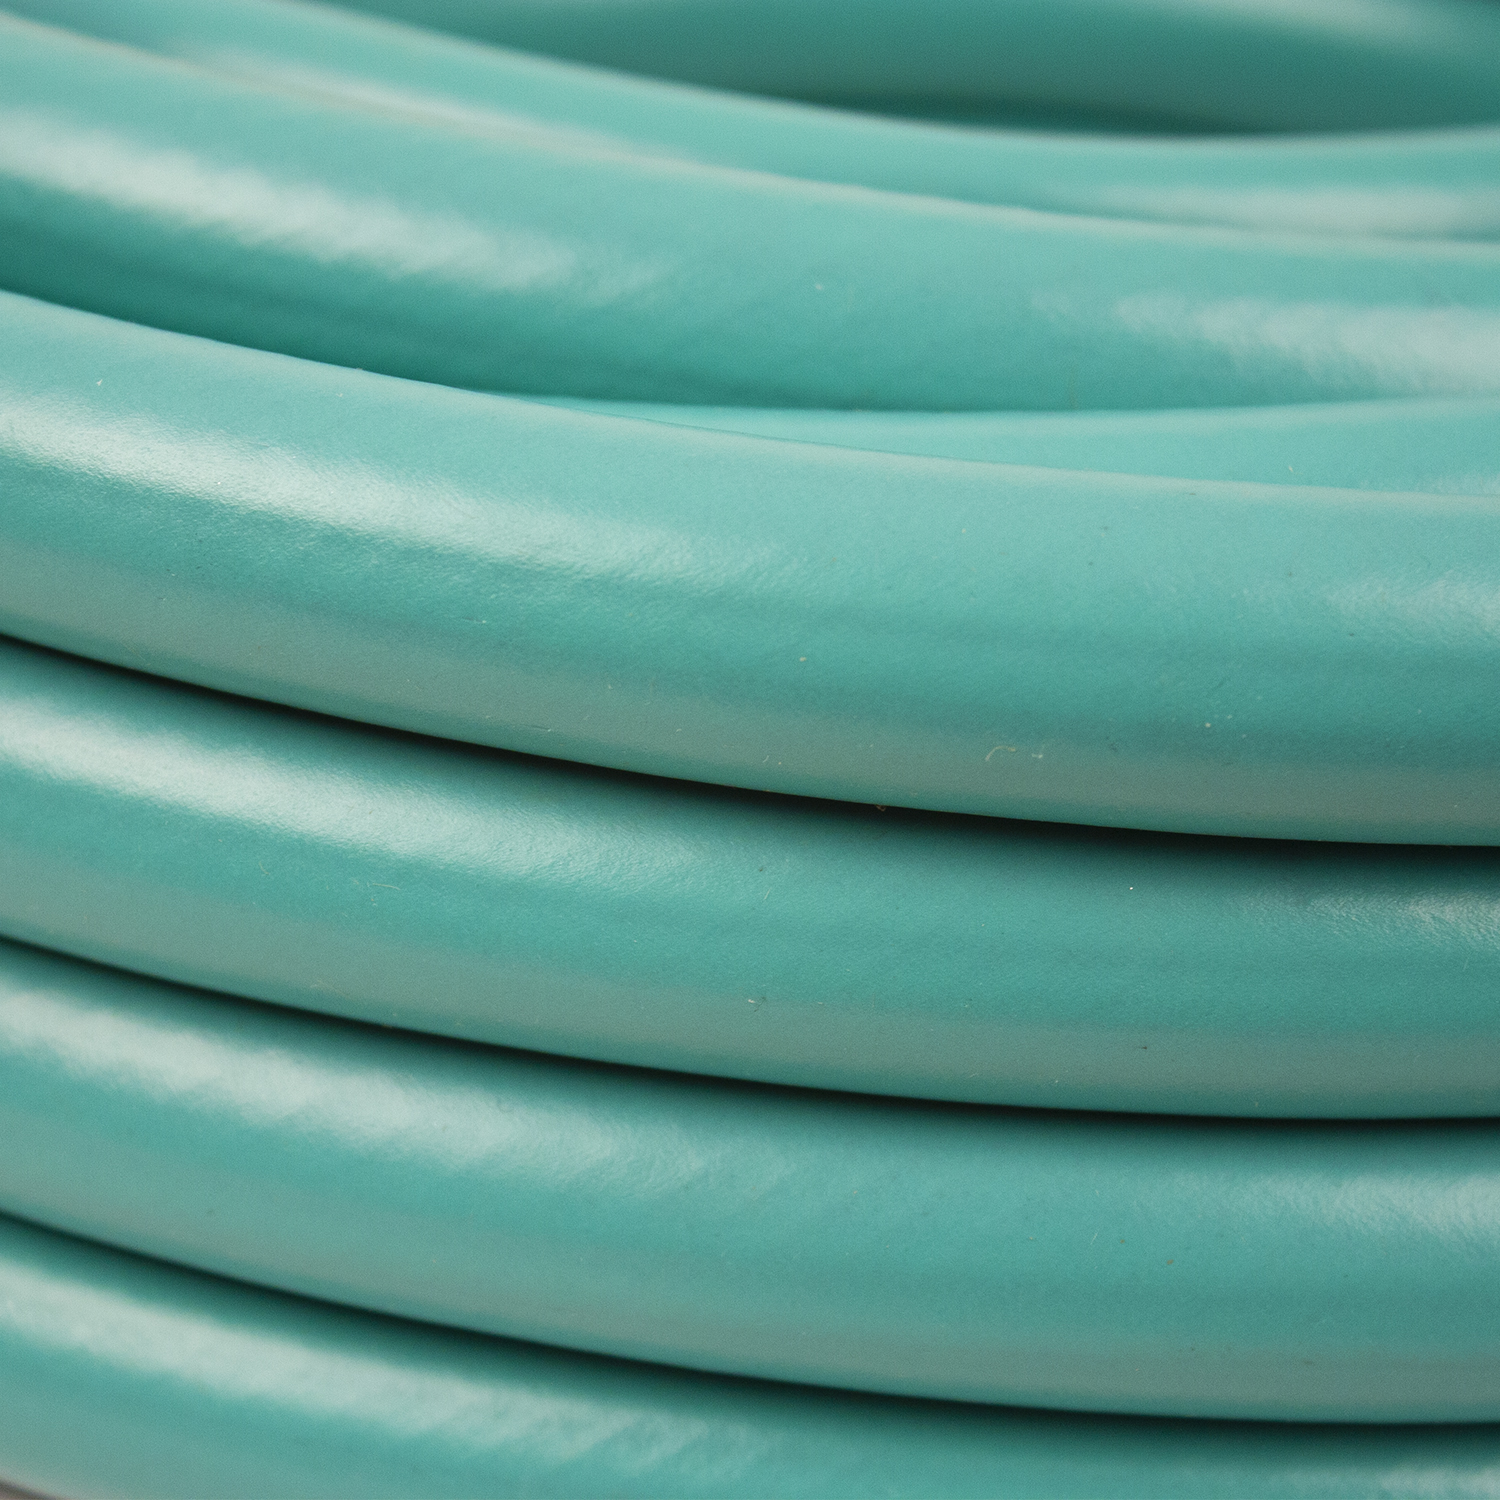 All Purpose Lawn Hose Close Up Image